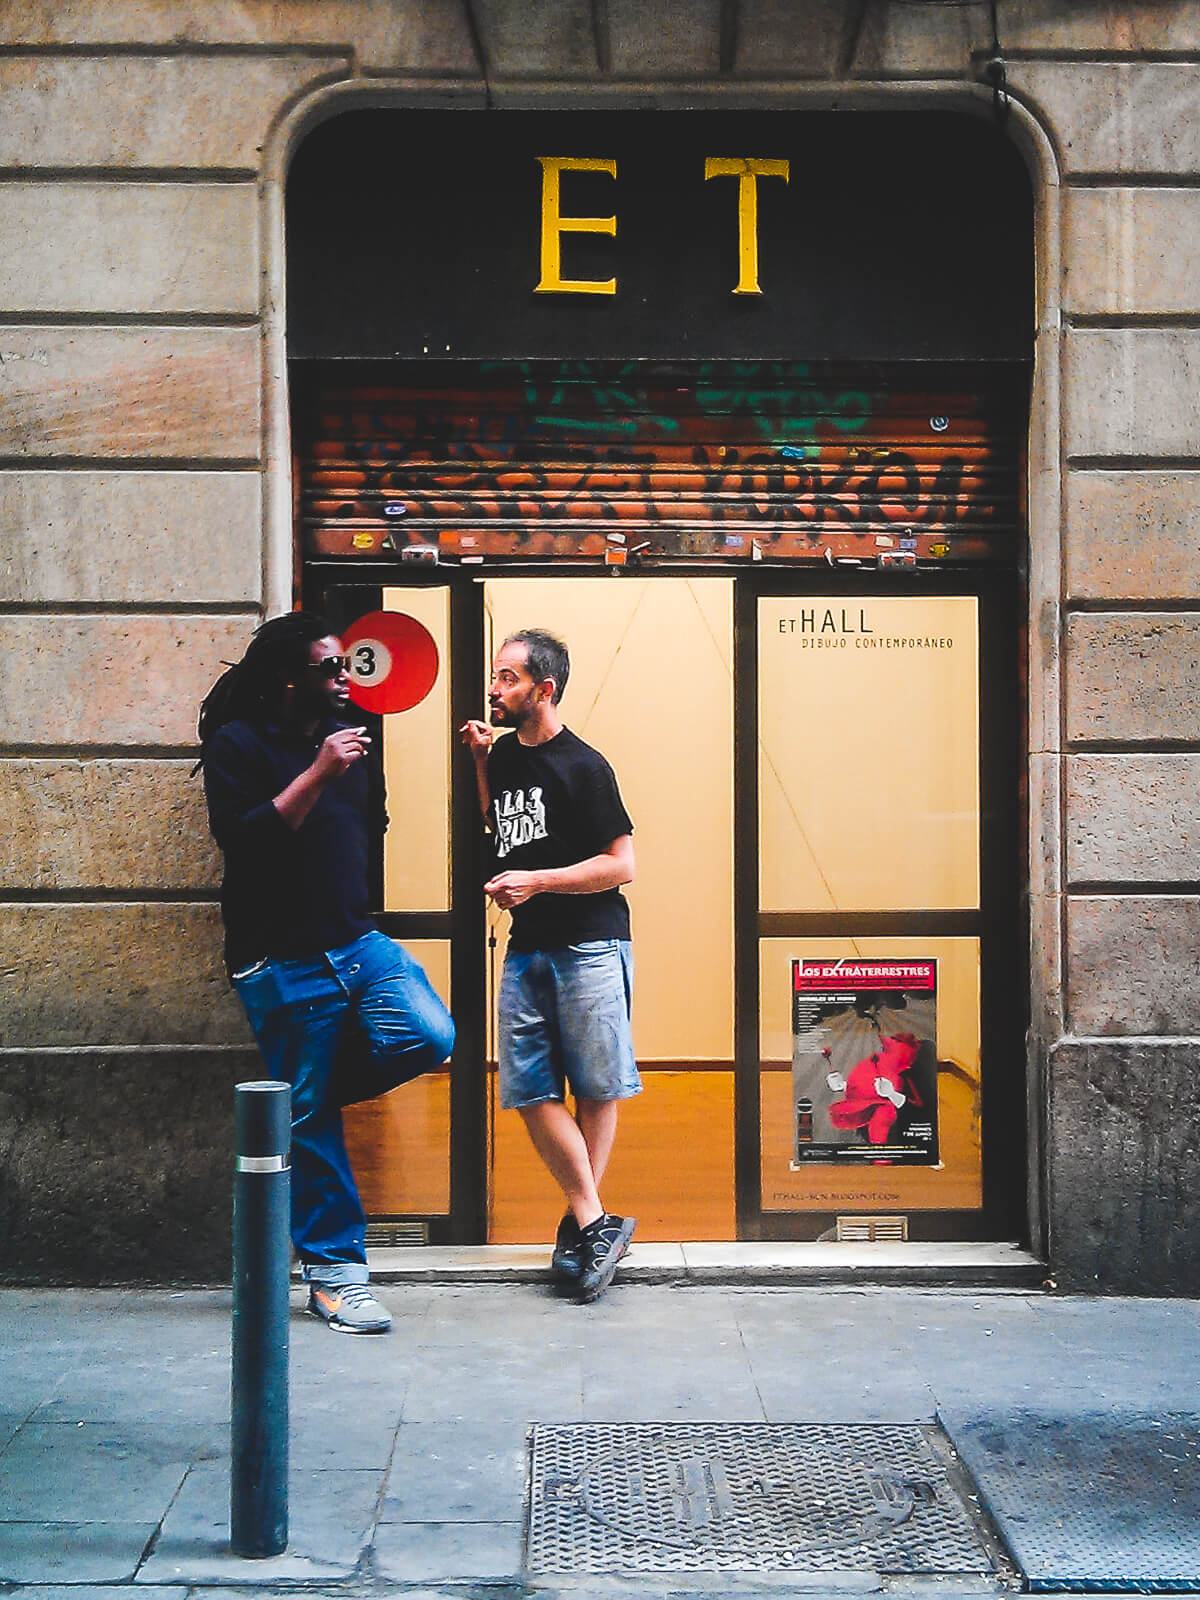 Barcelona Street Photography, ET Hall, People talking, dibujo contemporaneo